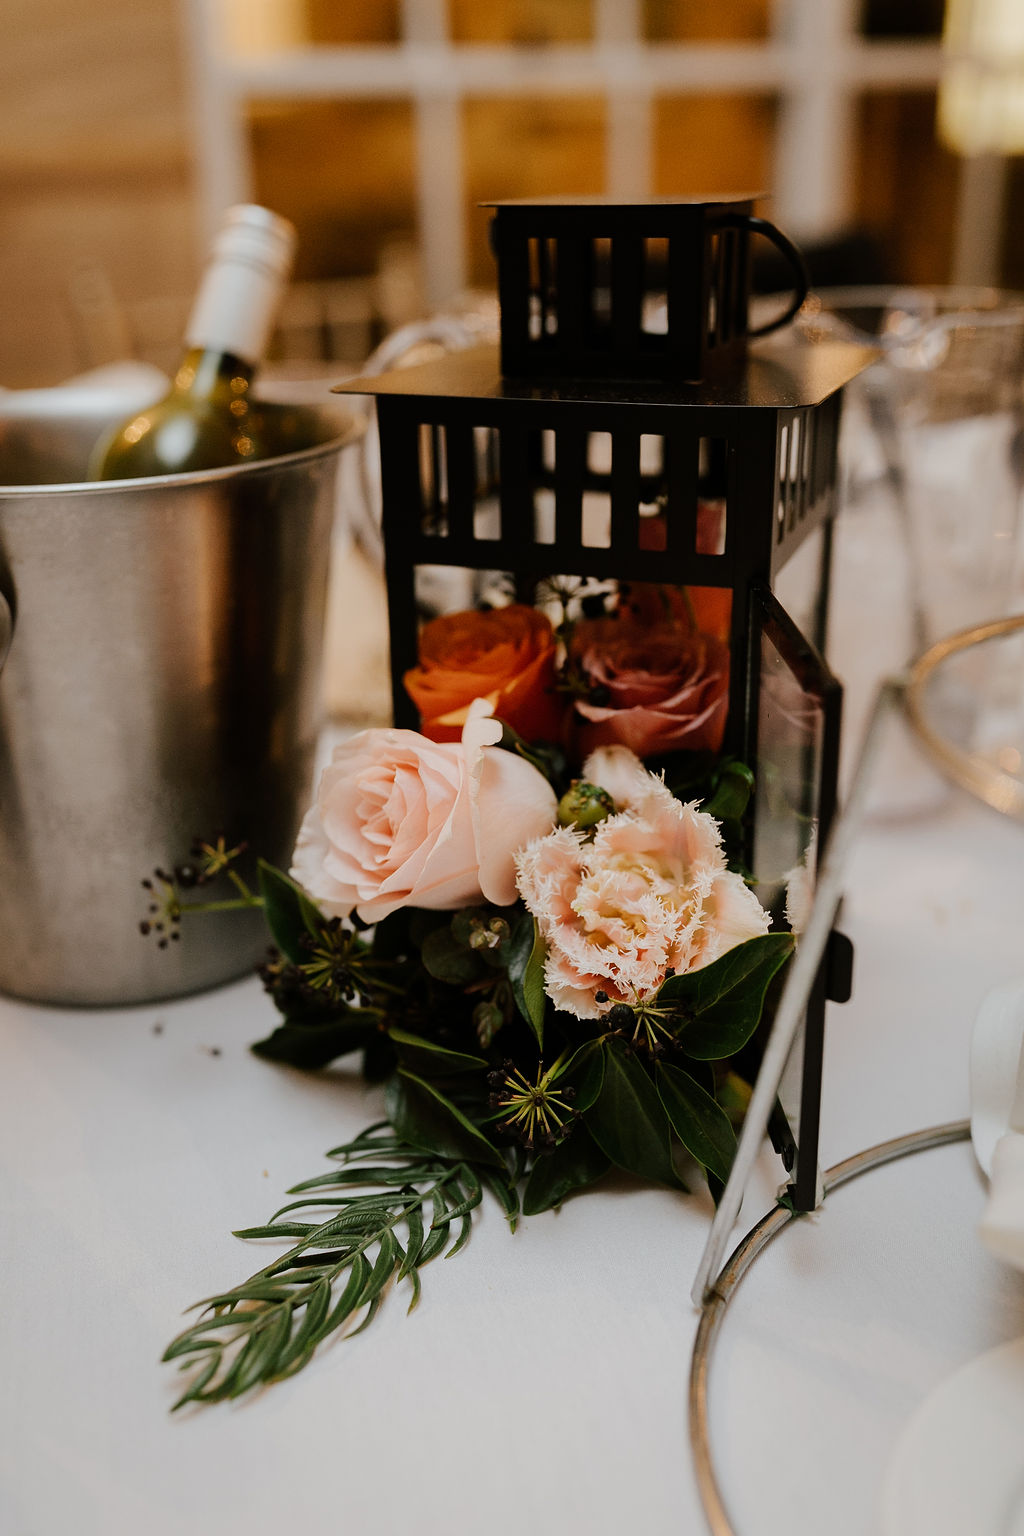 Floral lantern table centerpiece.jpg